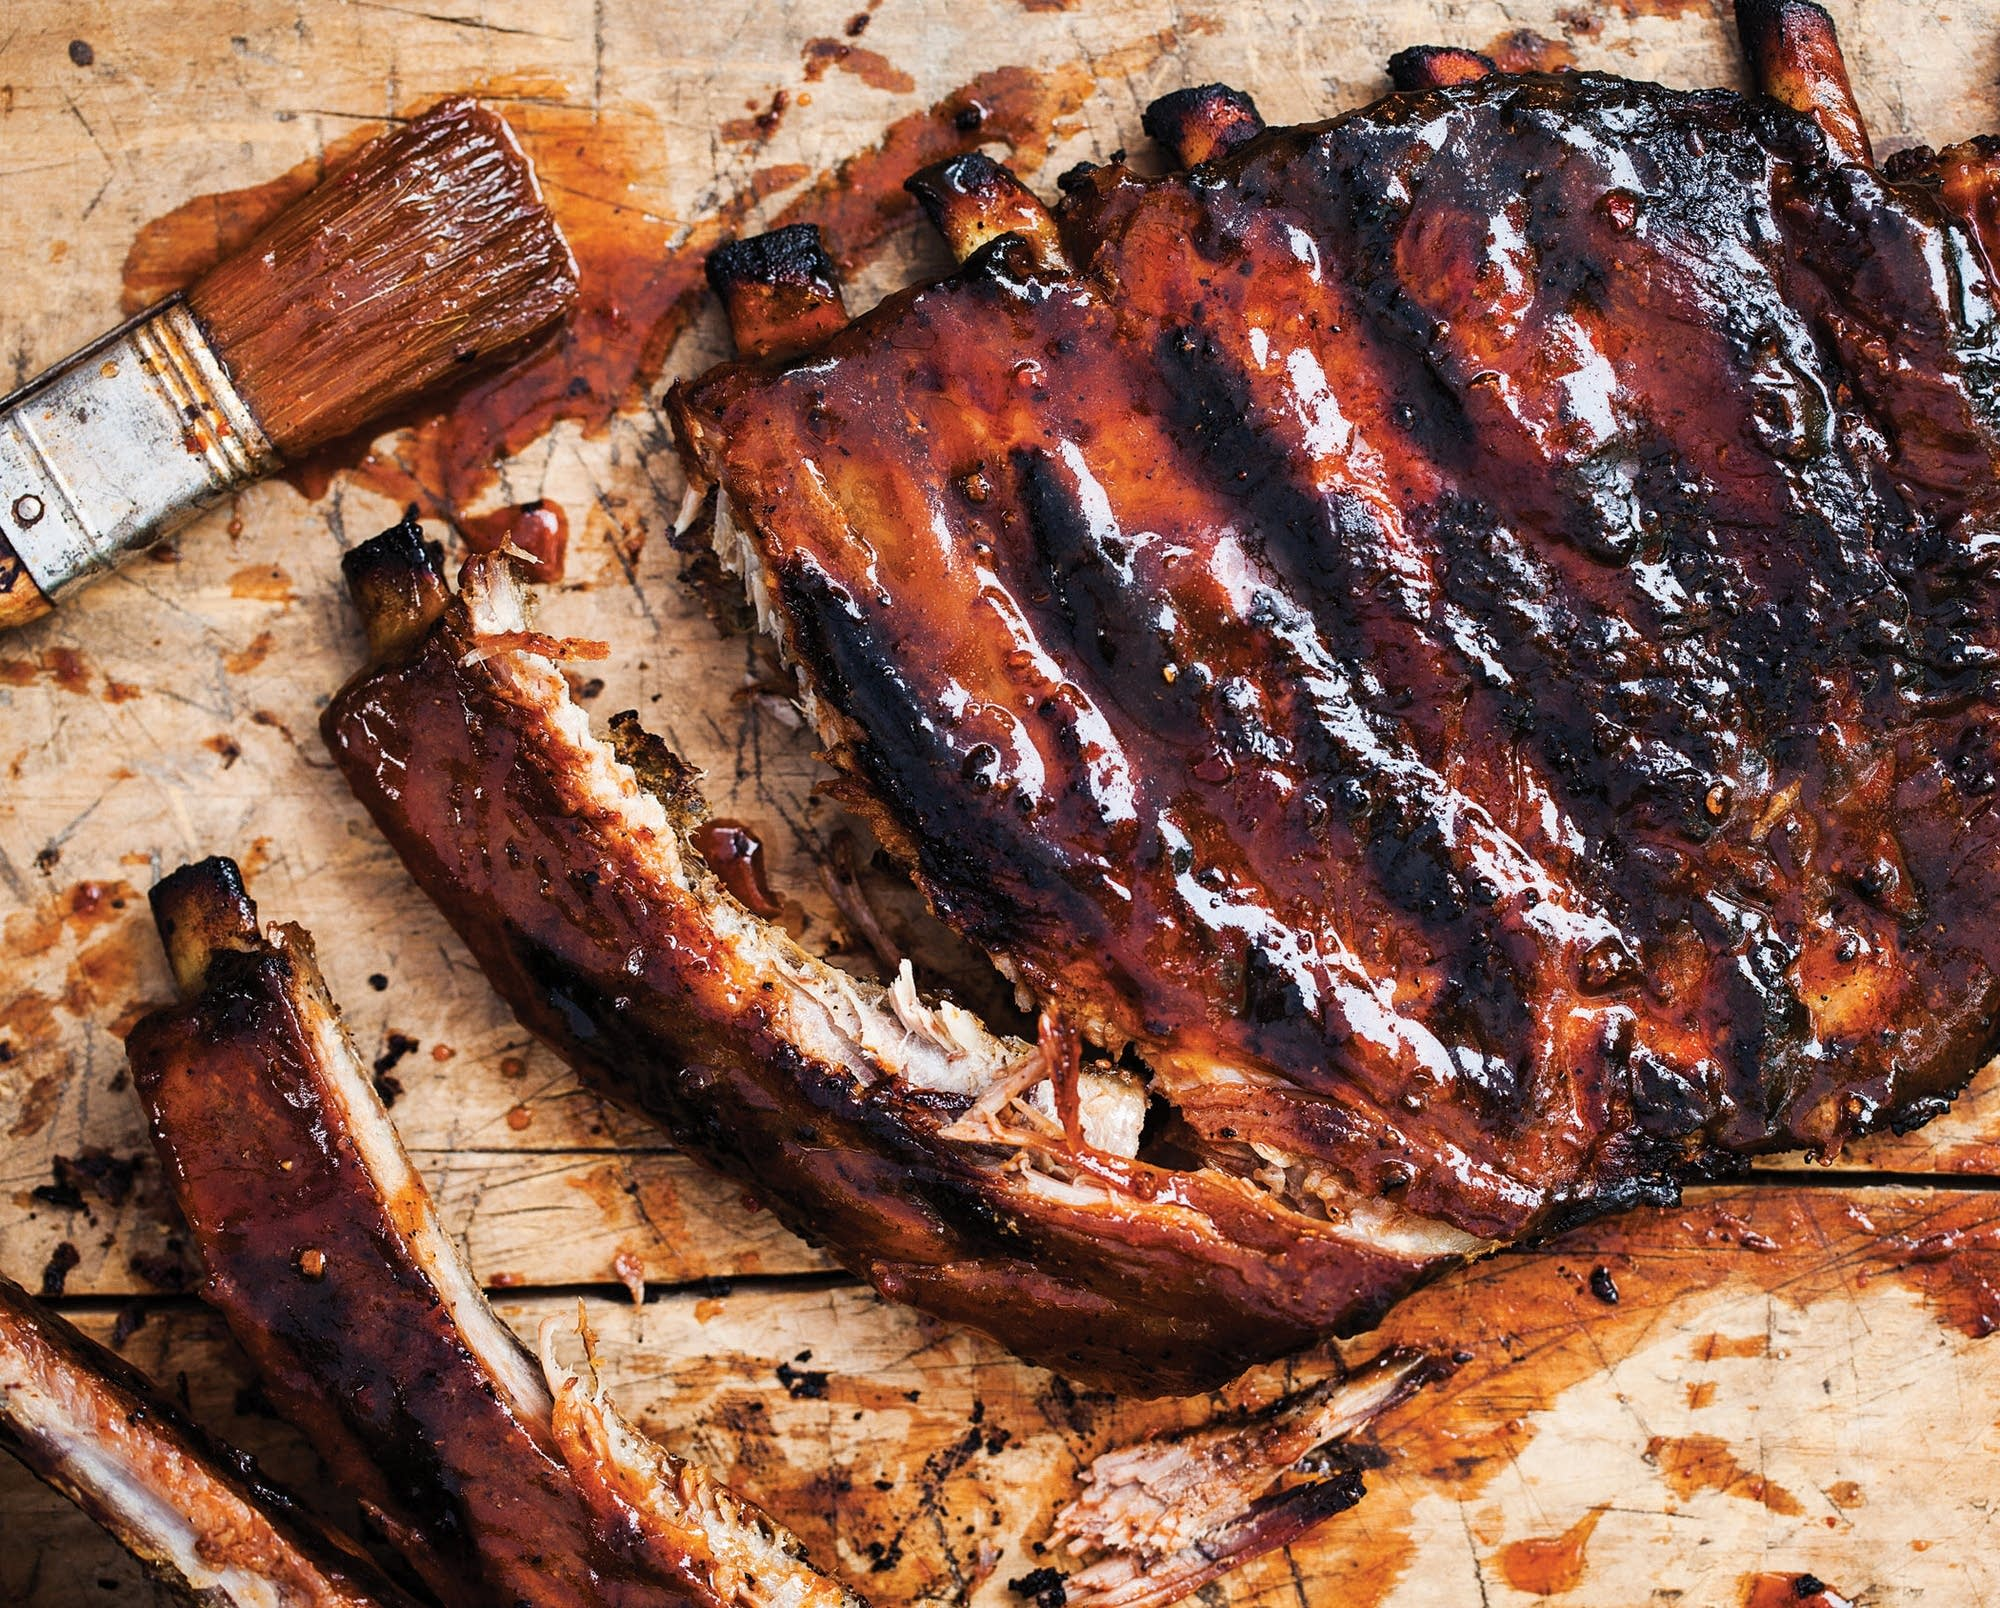 Best Ever Barbecued Ribs The Splendid Table